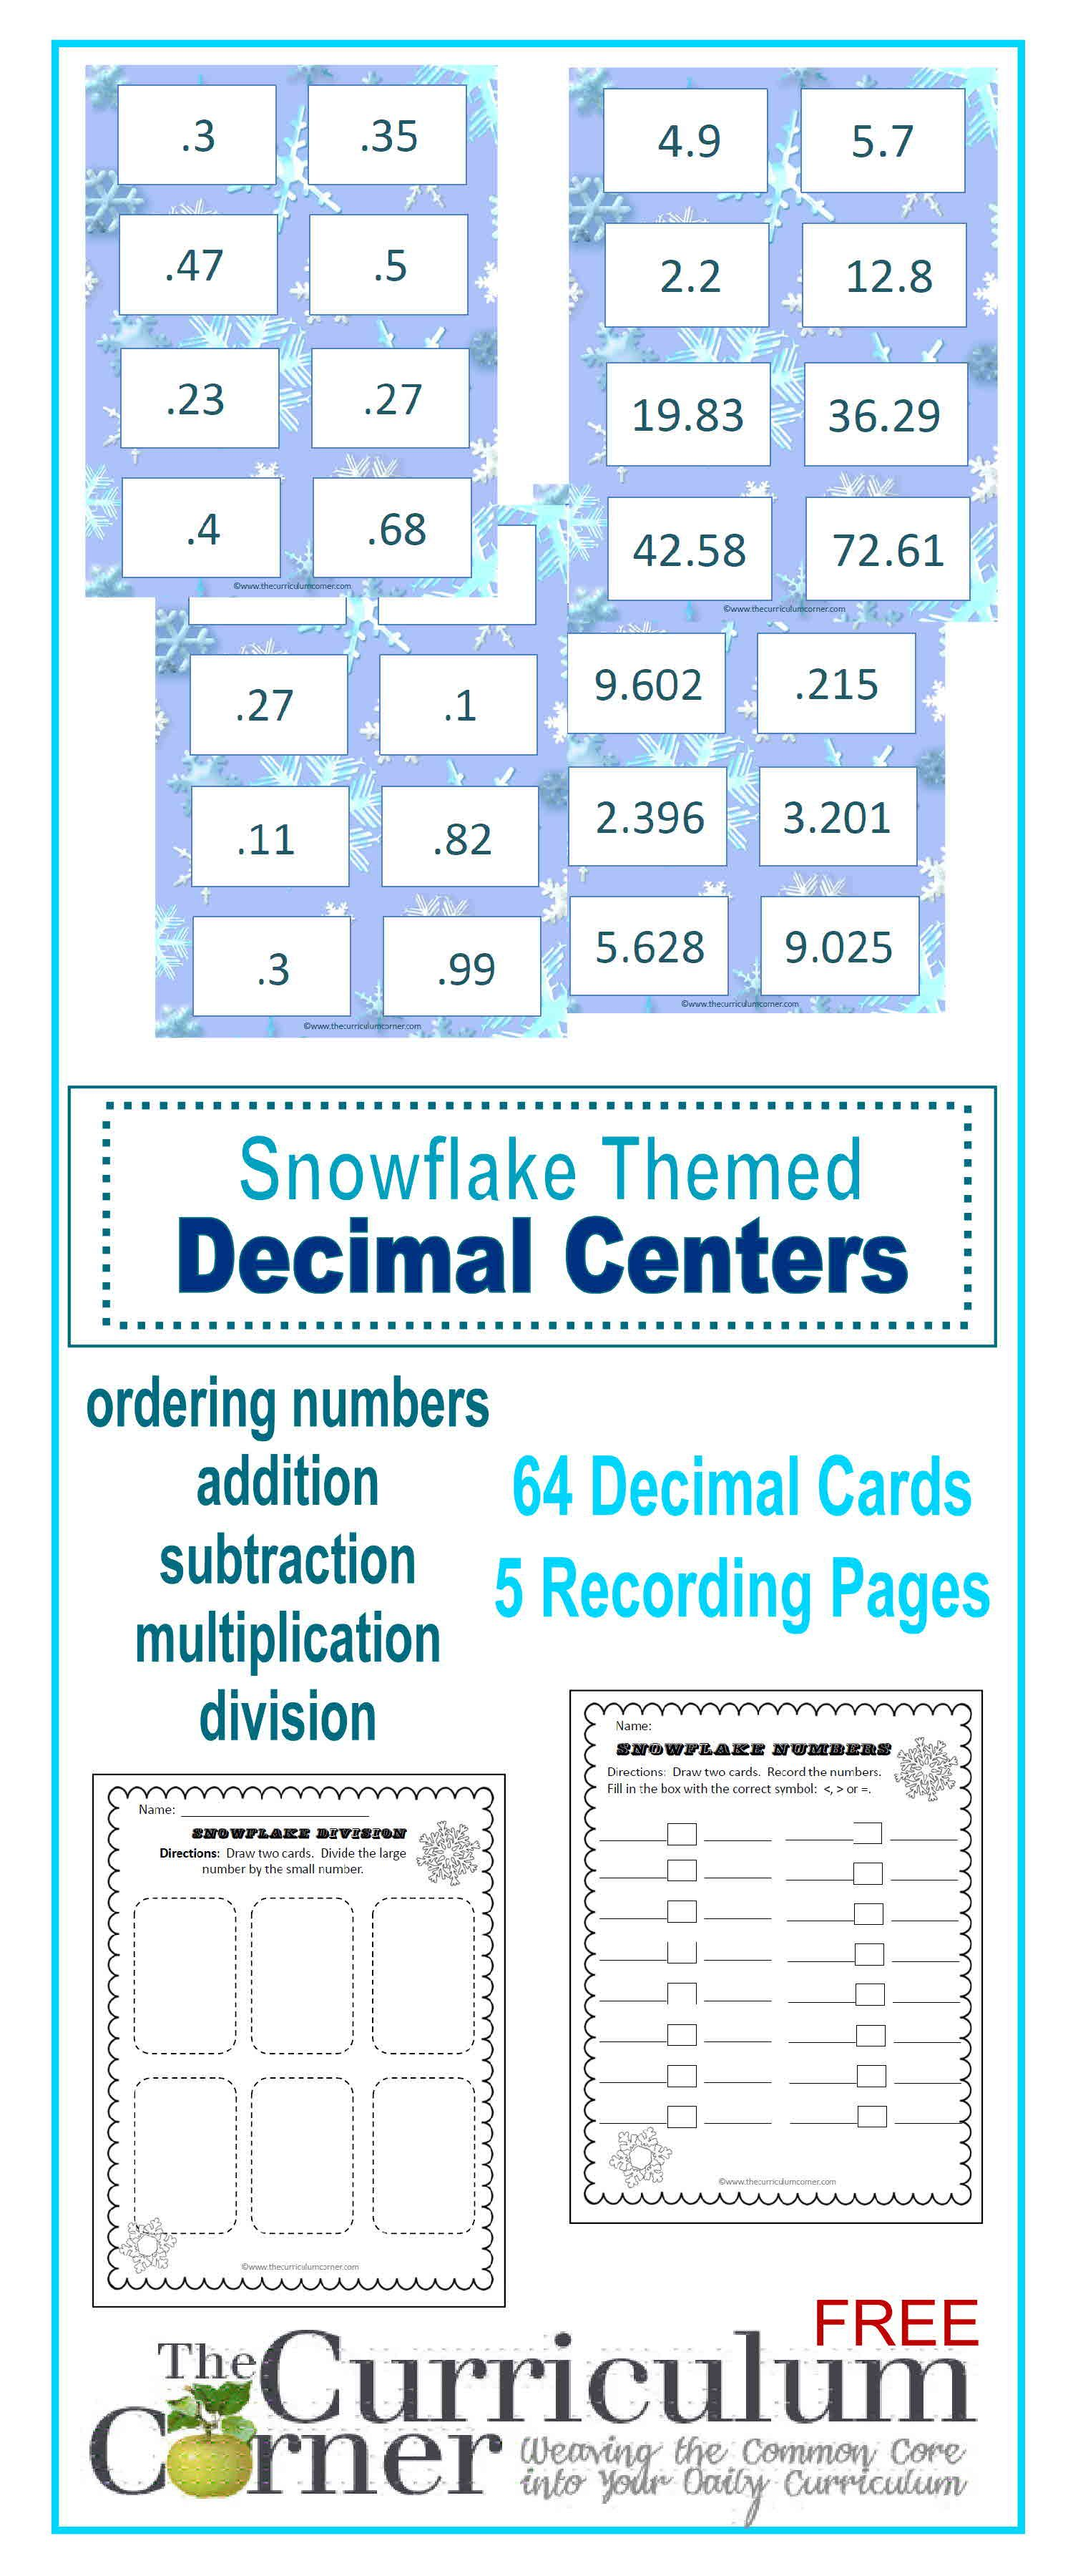 Decimal Centers | Snowflake Themed | Montessori.Maths | Pinterest ...